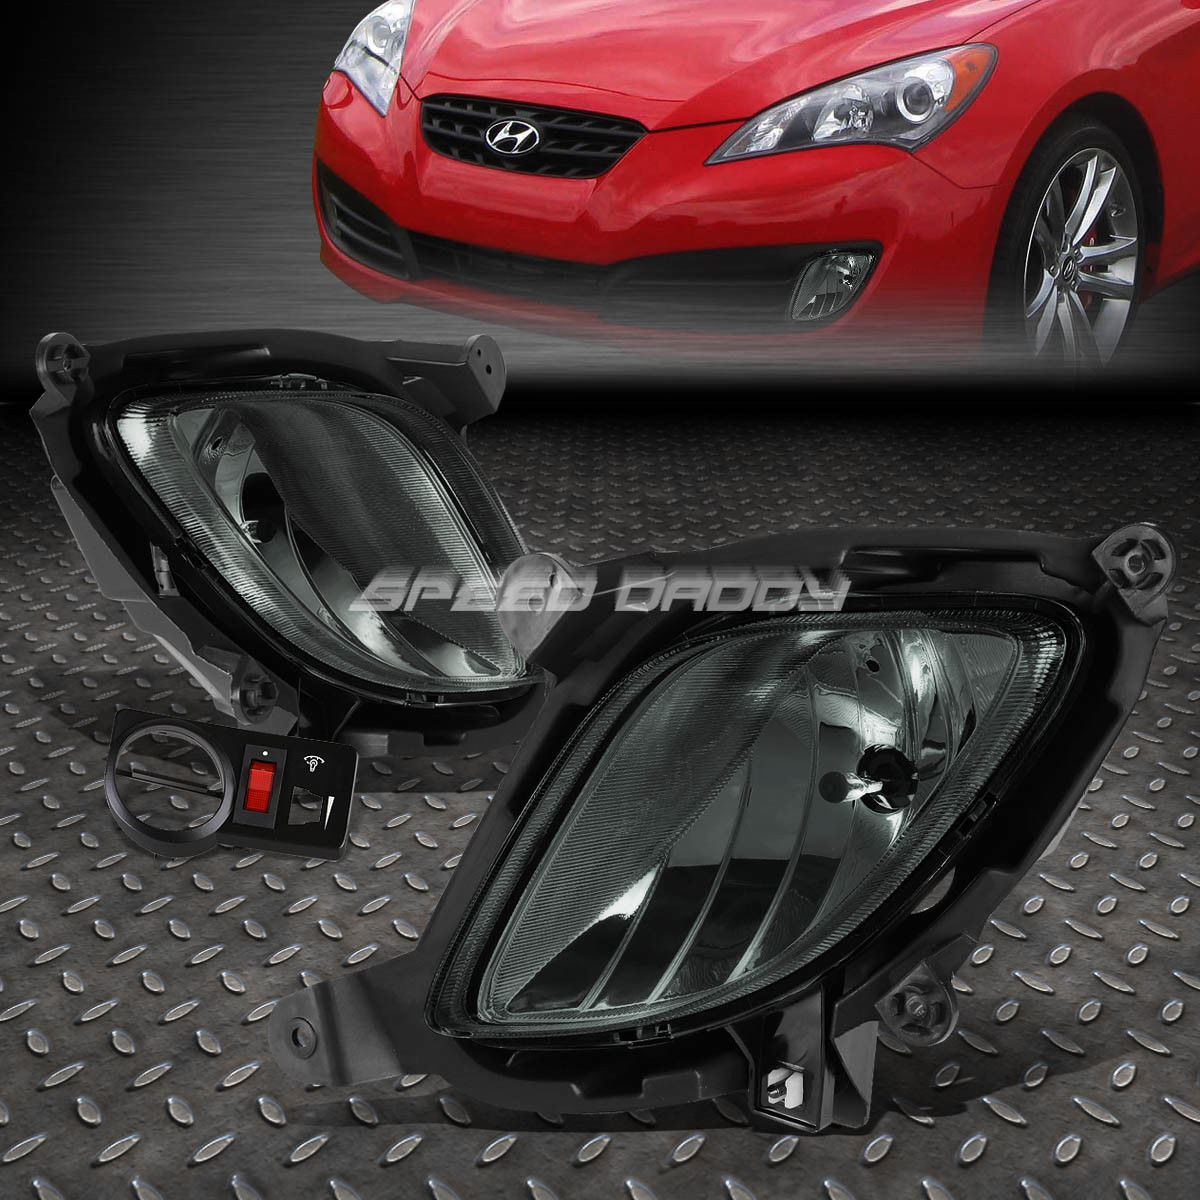 USフォグライト FOR 10-12 COUPE COUPE BH/GT BH SMOKED TINTED LENS FOR OE BUMPER DRIVING FOG LIGHT+SWITCH PAIR 10?12分間のCOUPE BH/ GTソリッドタイトドレンズOEバッファー駆動フォグライト+スイッチペア, キノサキチョウ:6a99e9a9 --- diadrasis.net